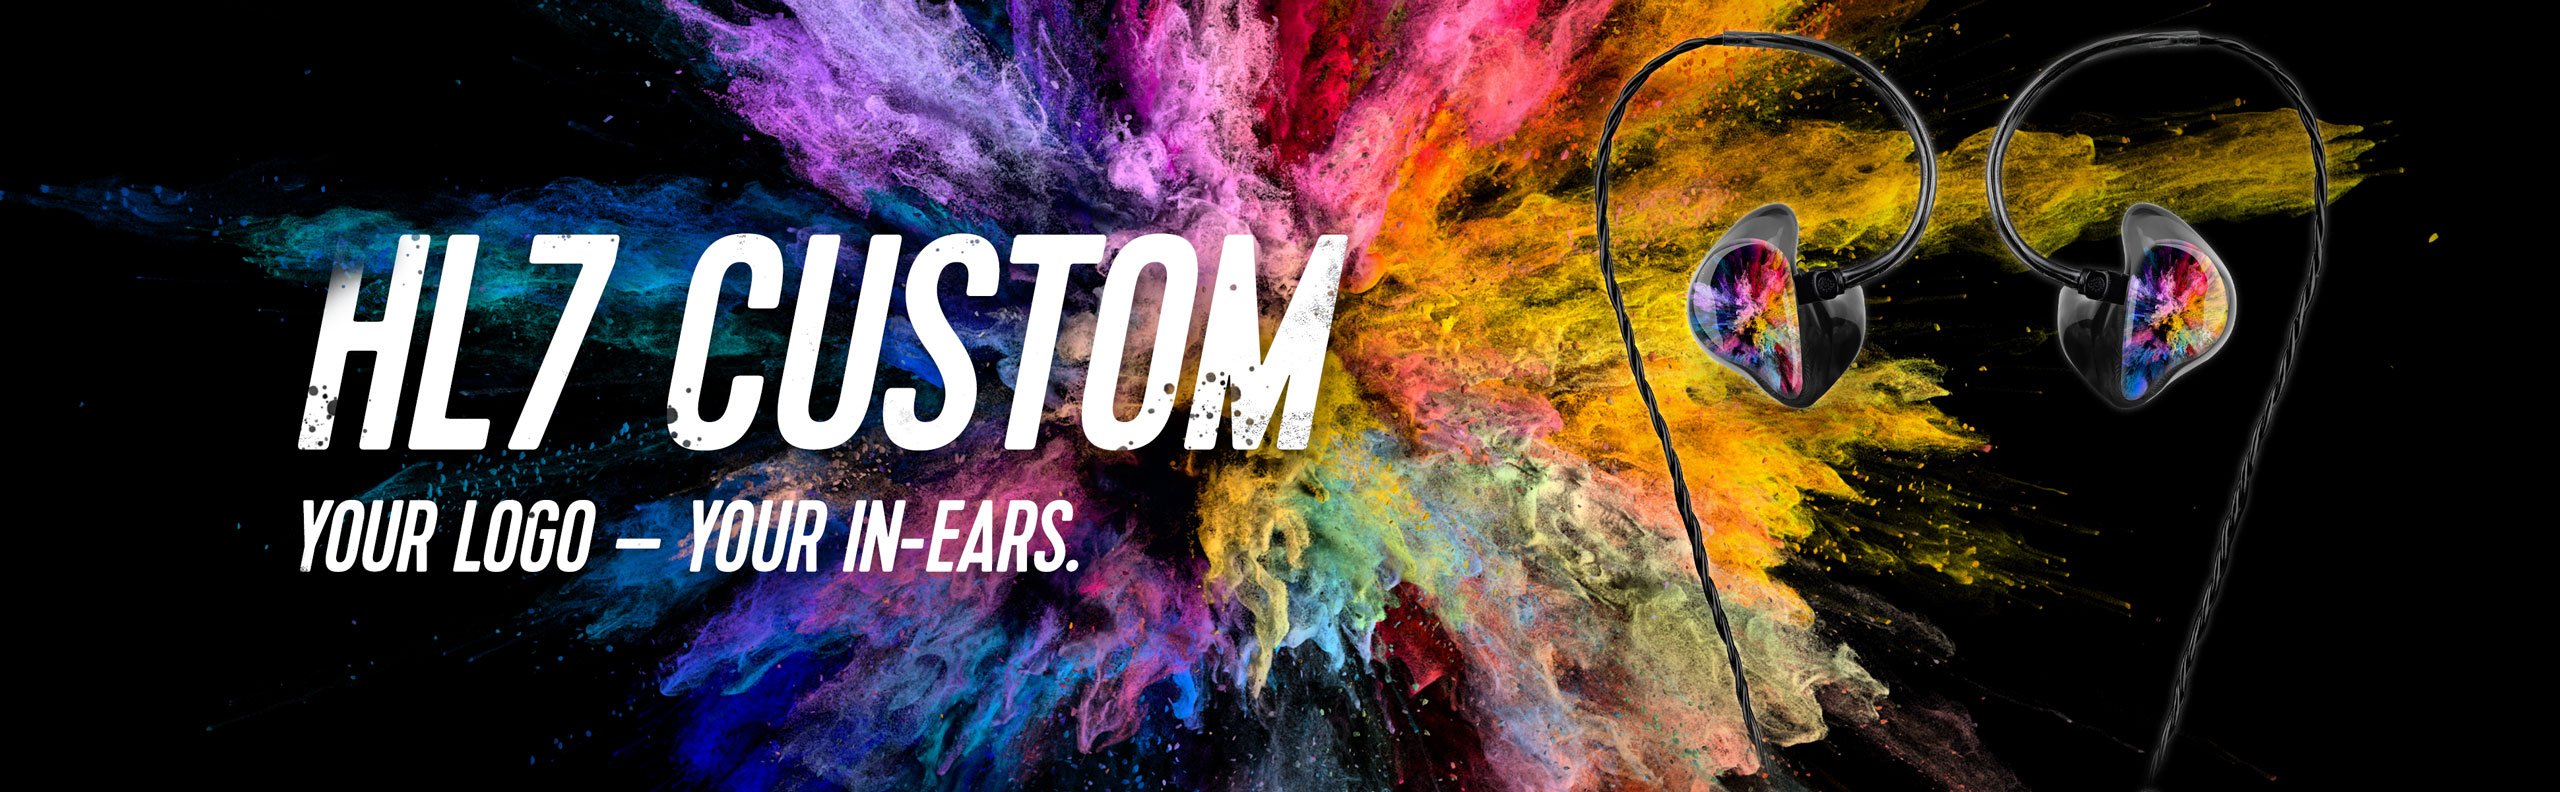 HL7 Custom In-Ears Logo Banner